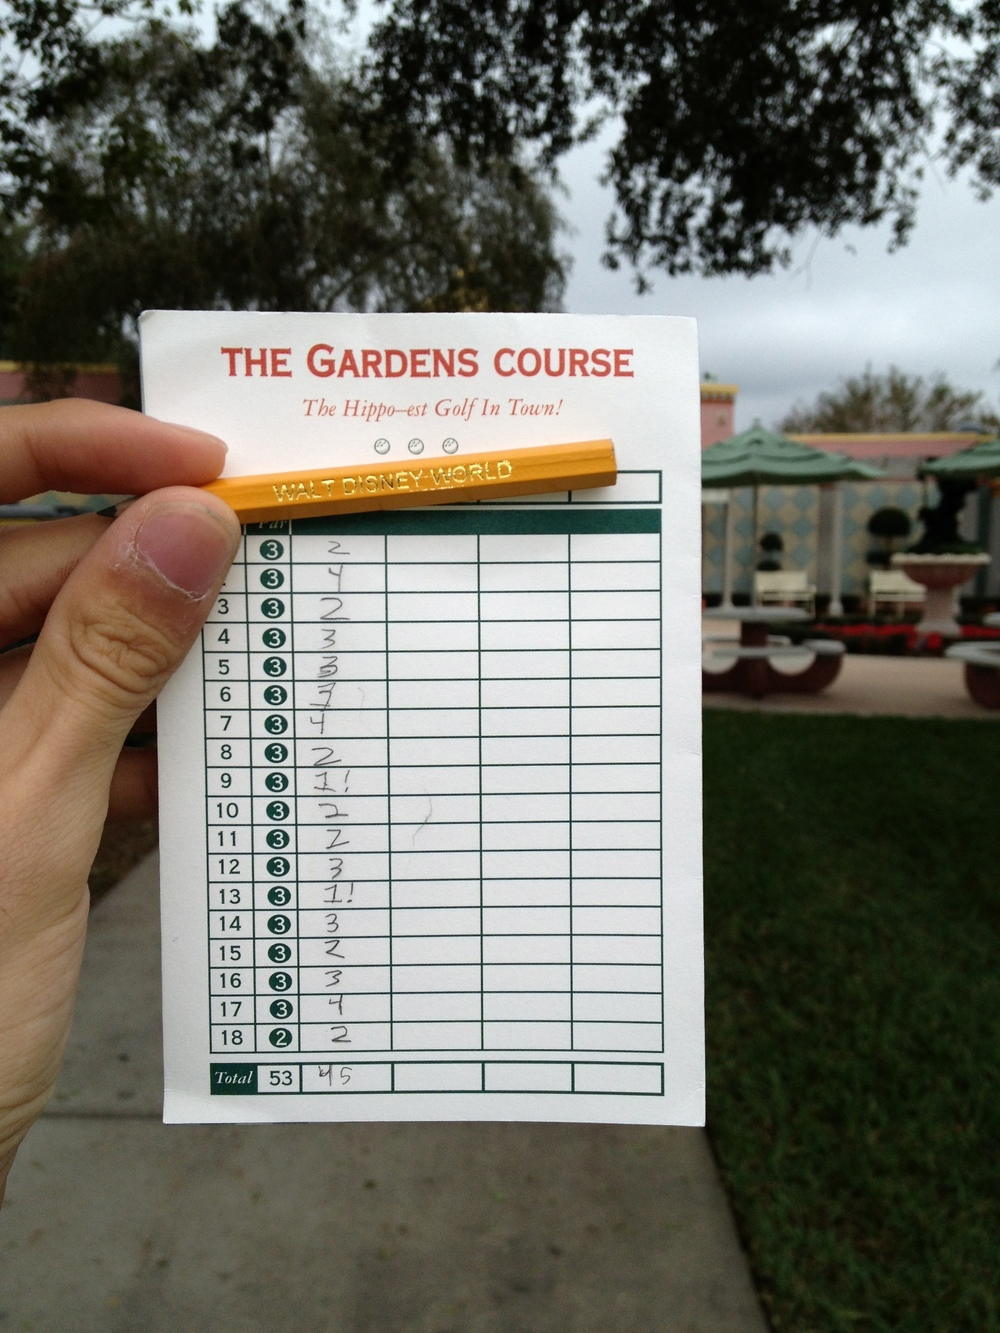 Miniature Golf score card at Disneyworld.